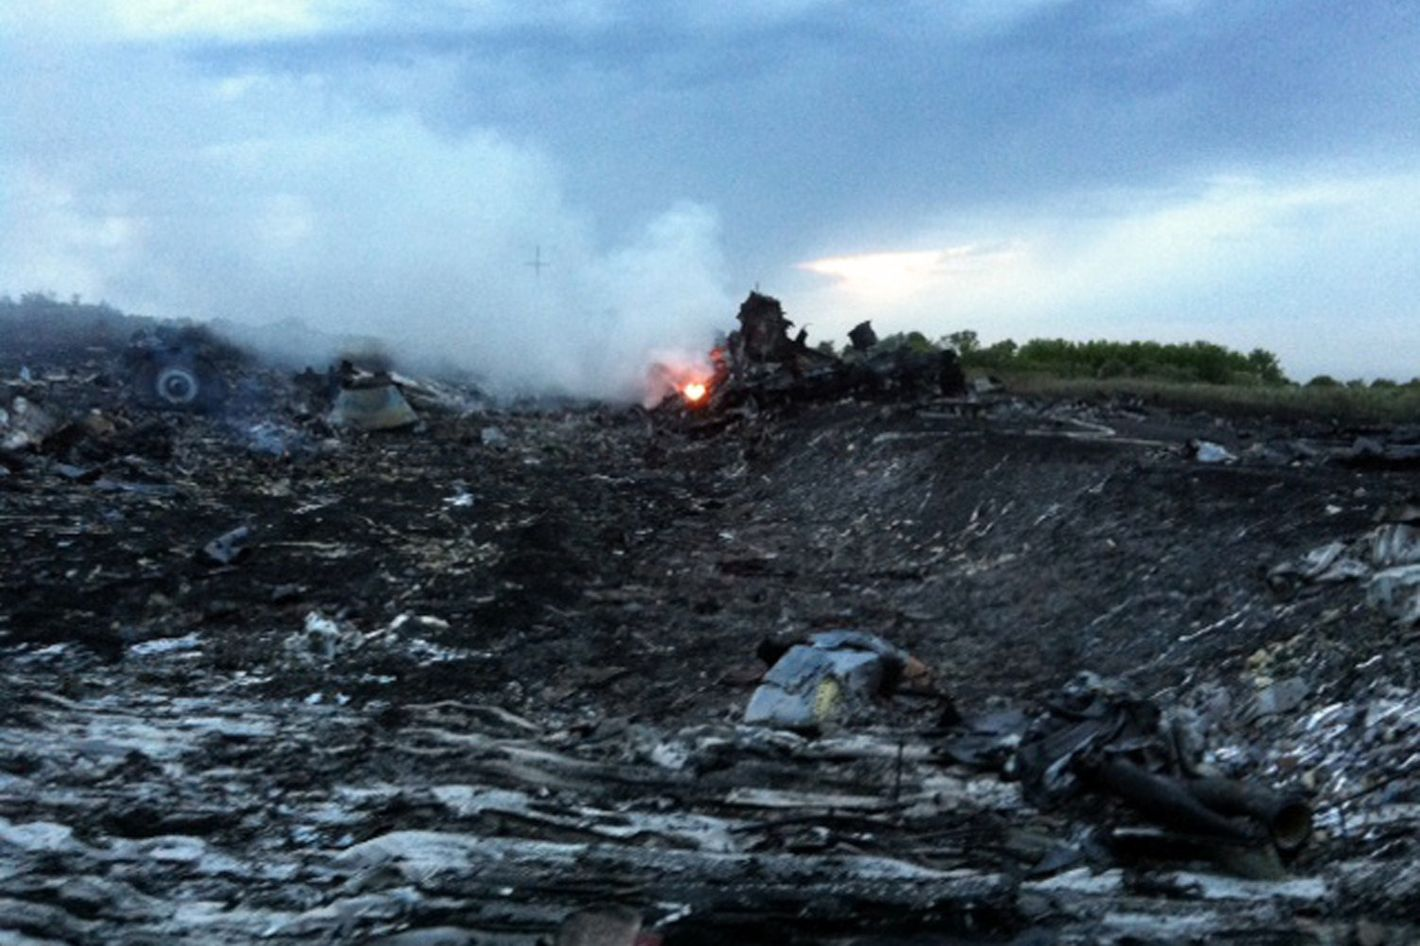 A picture taken on July 17, 2014 shows smoke and wreckage of the malaysian airliner carrying 295 people from Amsterdam to Kuala Lumpur after it crashed, in rebel-held east Ukraine. Pro-Russian rebels fighting central Kiev authorities claimed on Thursday that the Malaysian airline that crashed in Ukraine had been shot down by a Ukrainian jet.